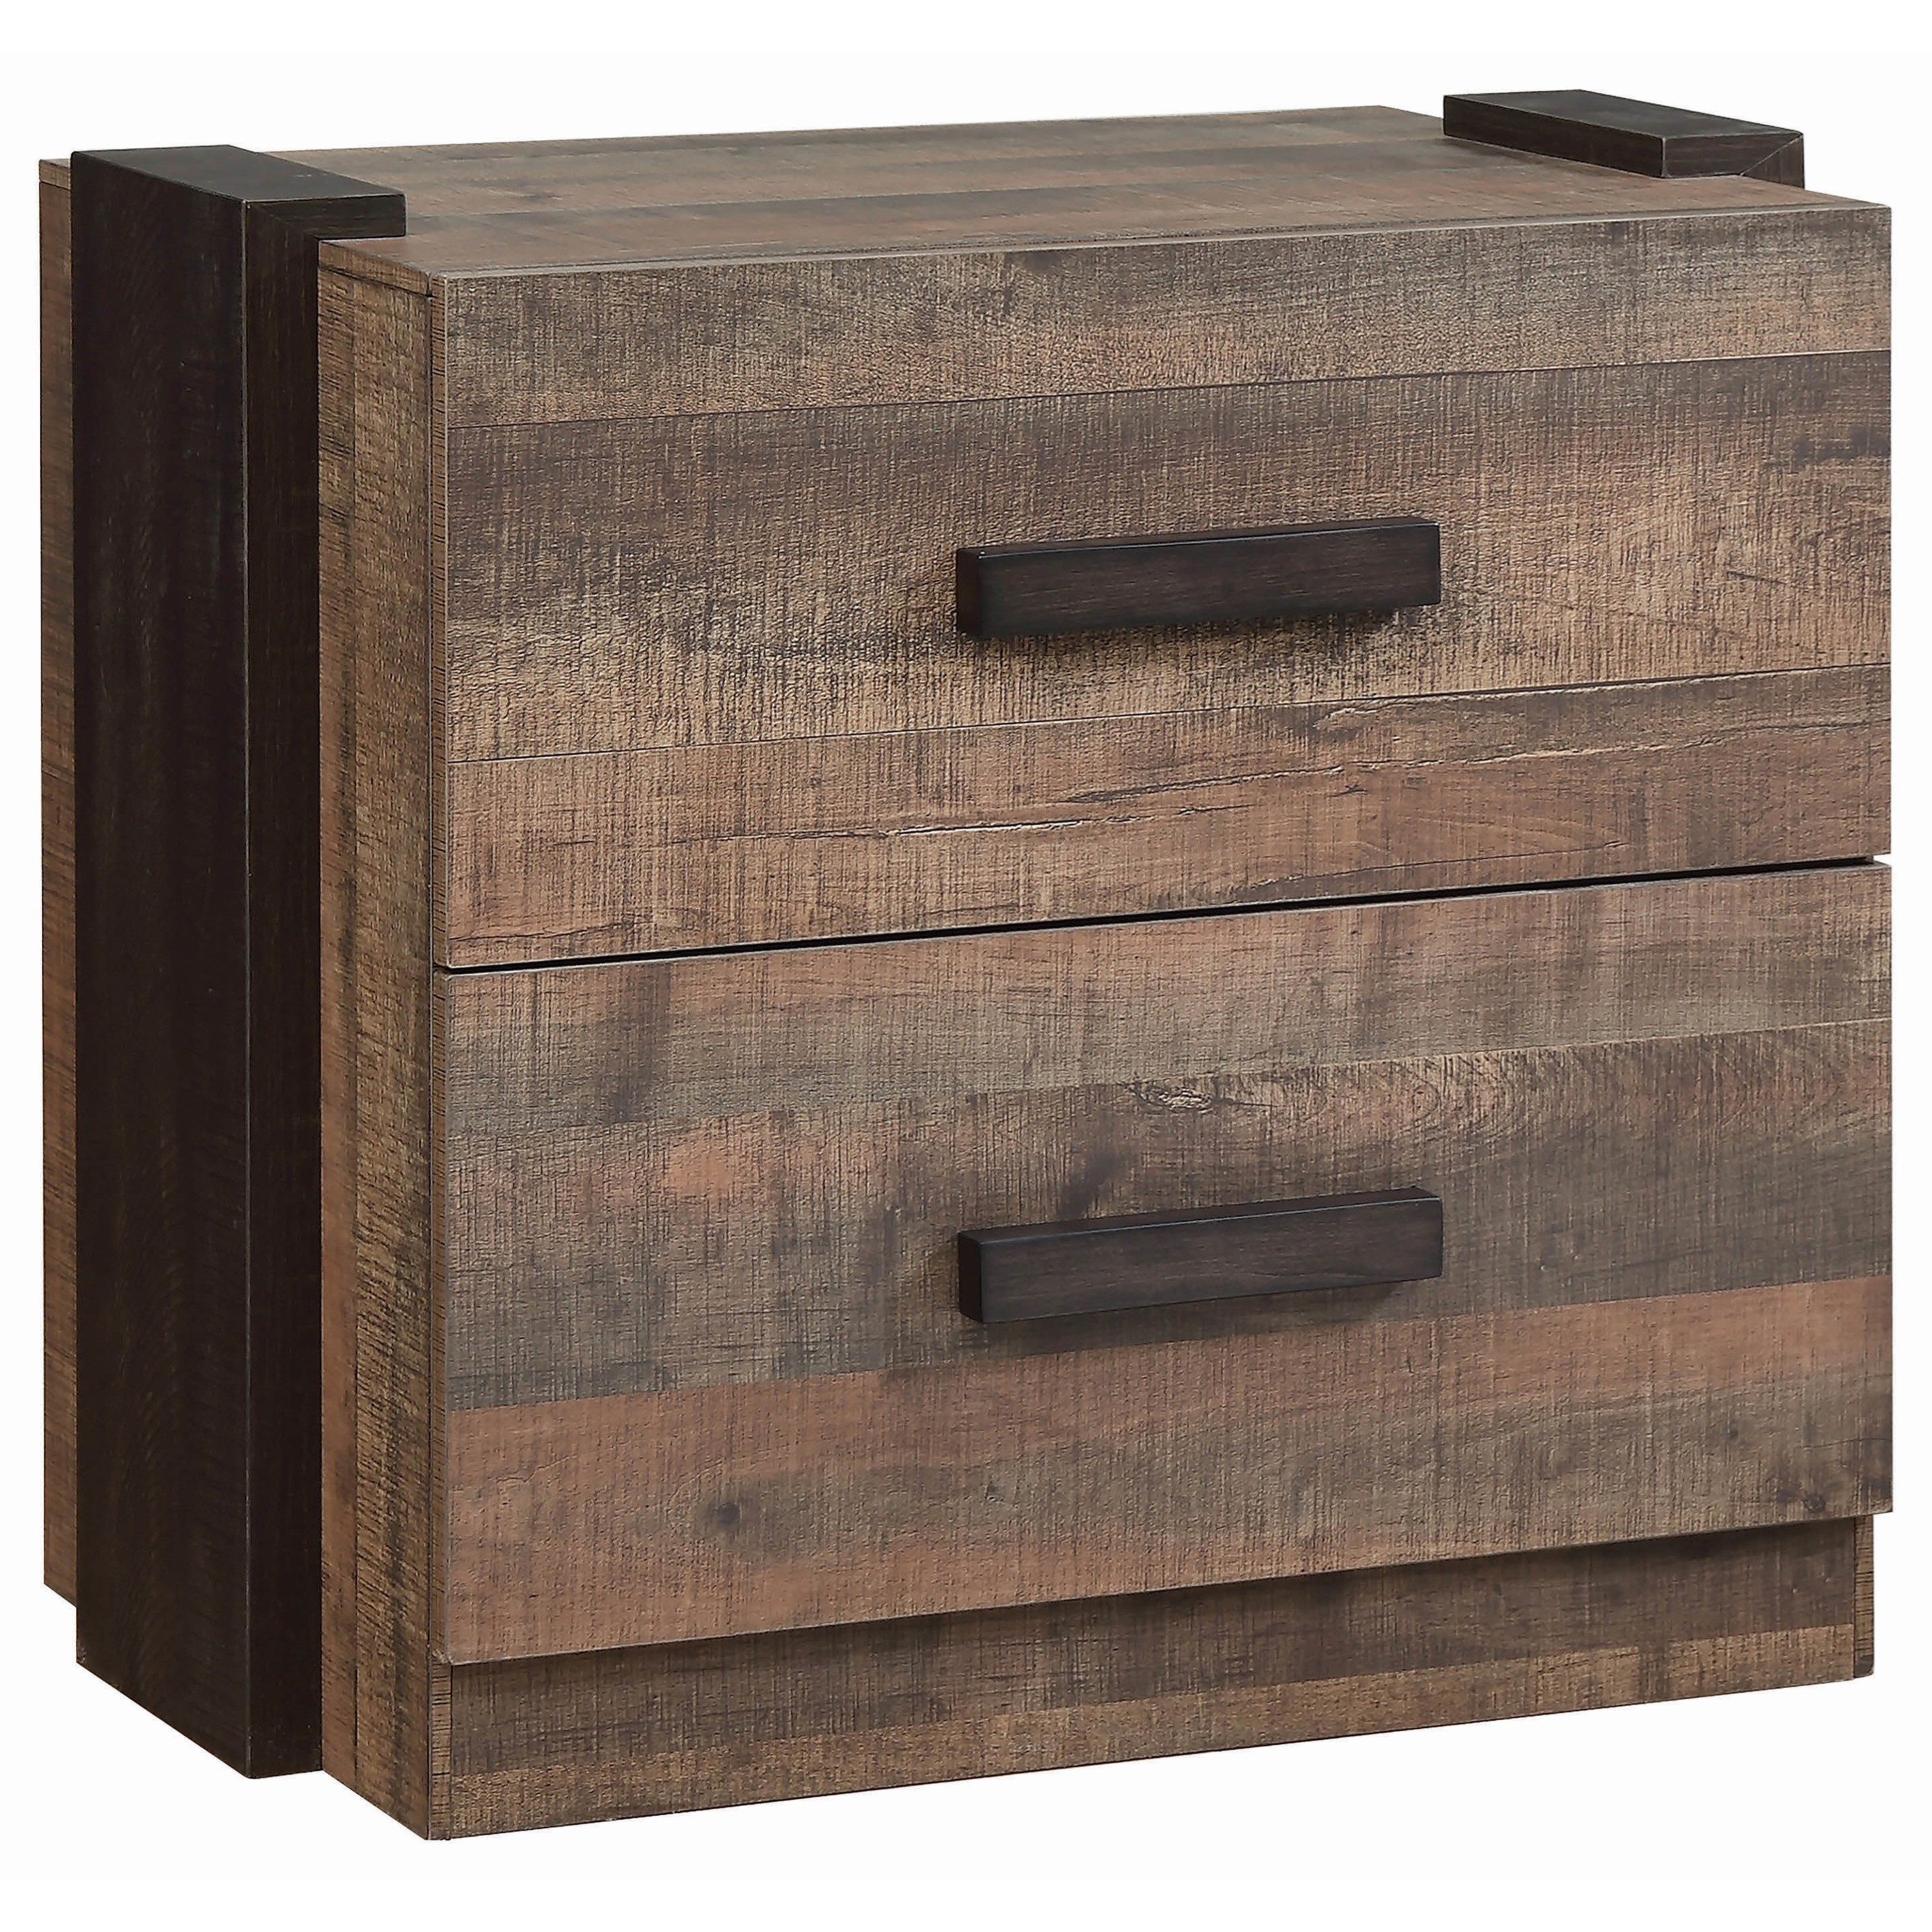 Weston Night Stand by Coaster at Furniture Superstore - Rochester, MN